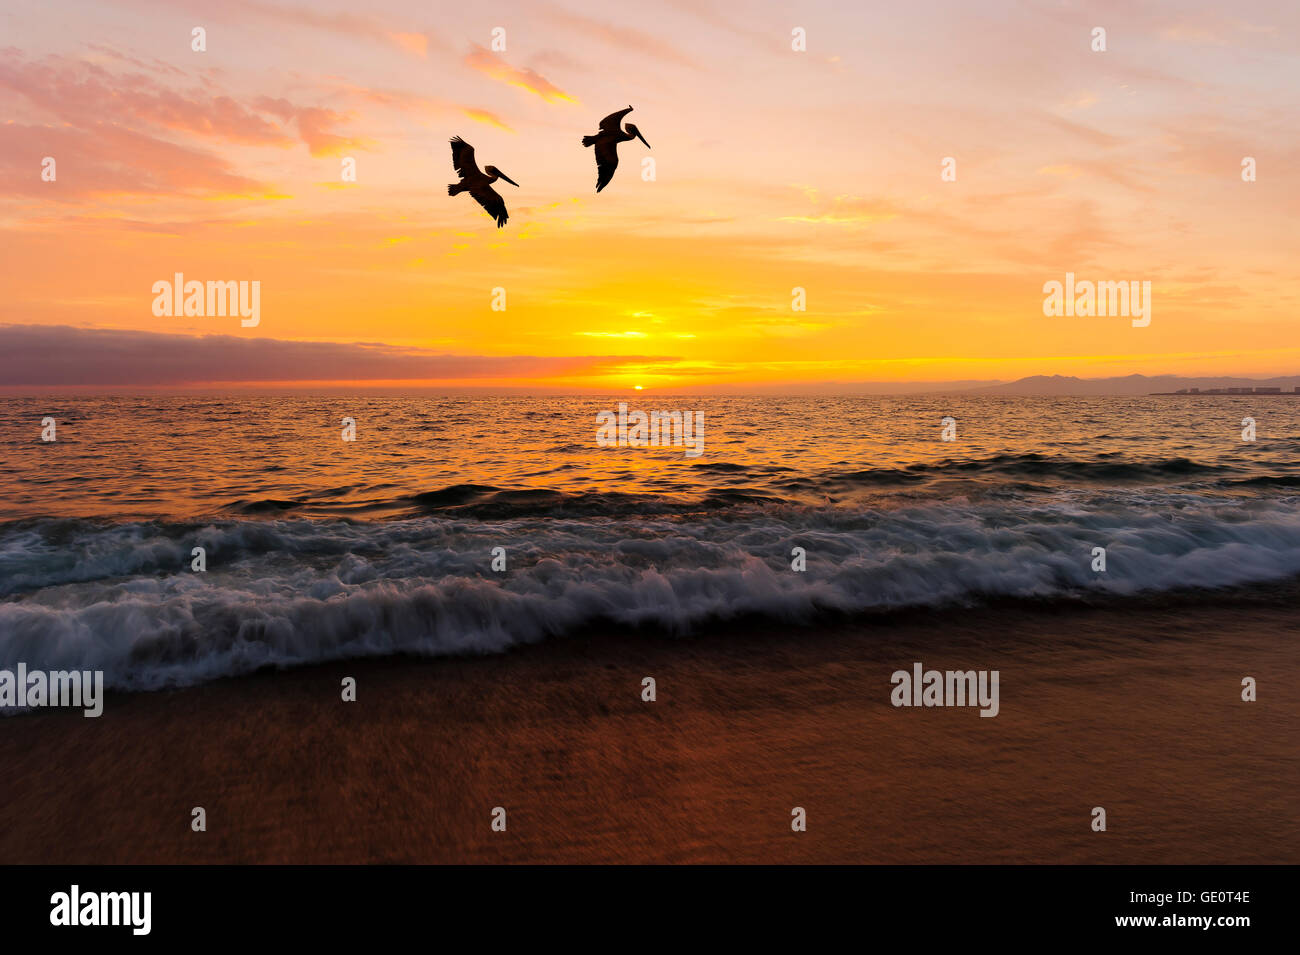 Birds silhouettes is two large seabirds flying agains a vivid and colorful ocean sunset as a gentle wave rolls to - Stock Image